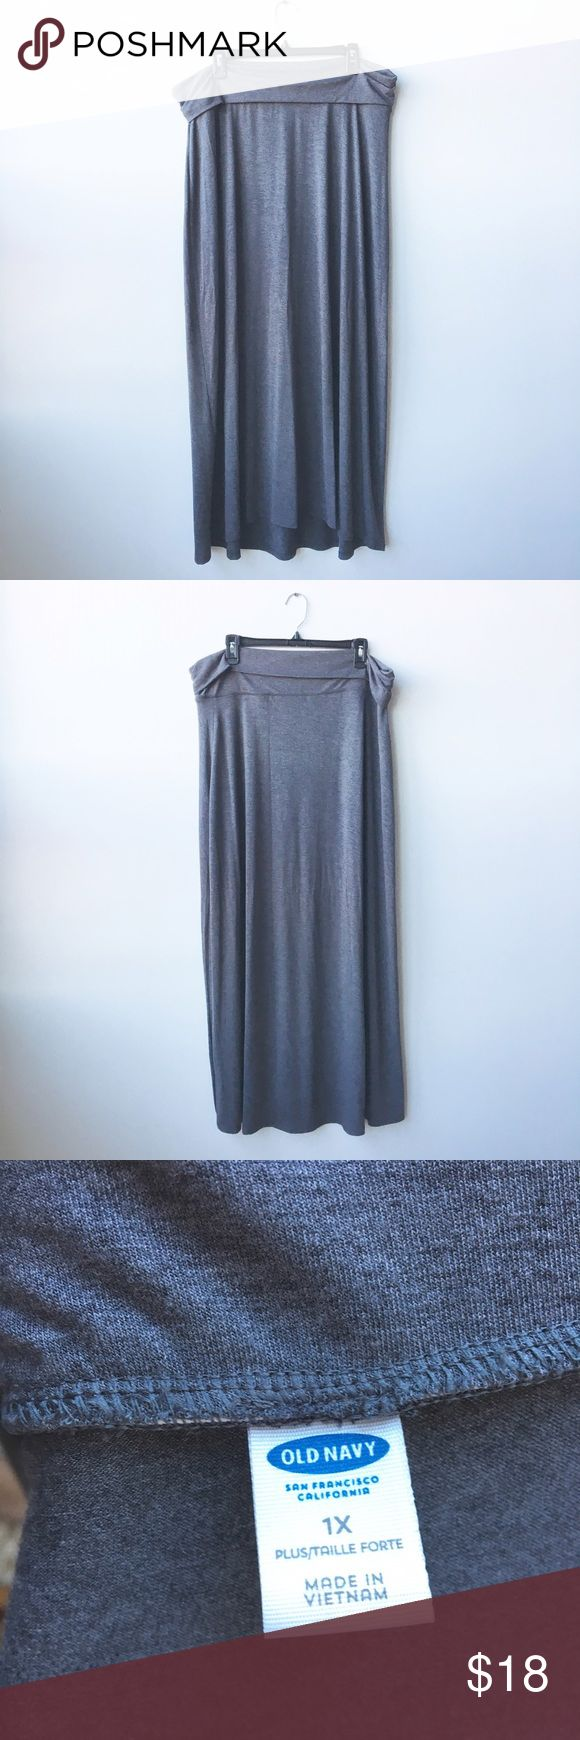 Dark Gray Old Navy Fold-Over Jersey Maxi Skirt Plus size maxi skirt from Old Navy. Dark gray super soft jersey. Women's size 1X. Never worn. NWOT. Old Navy Skirts Maxi